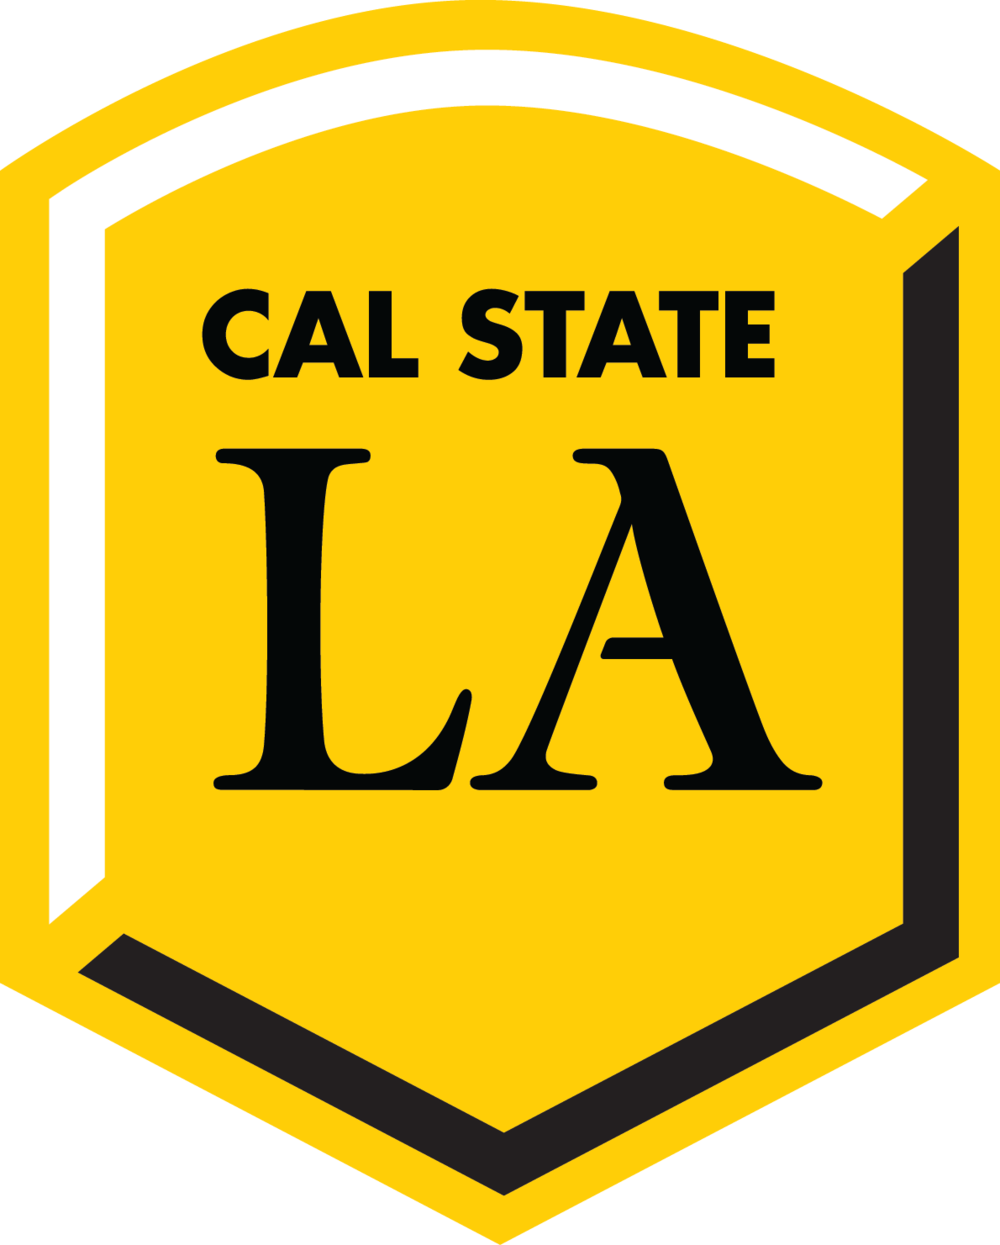 calstatelalogo_badge_gold.png